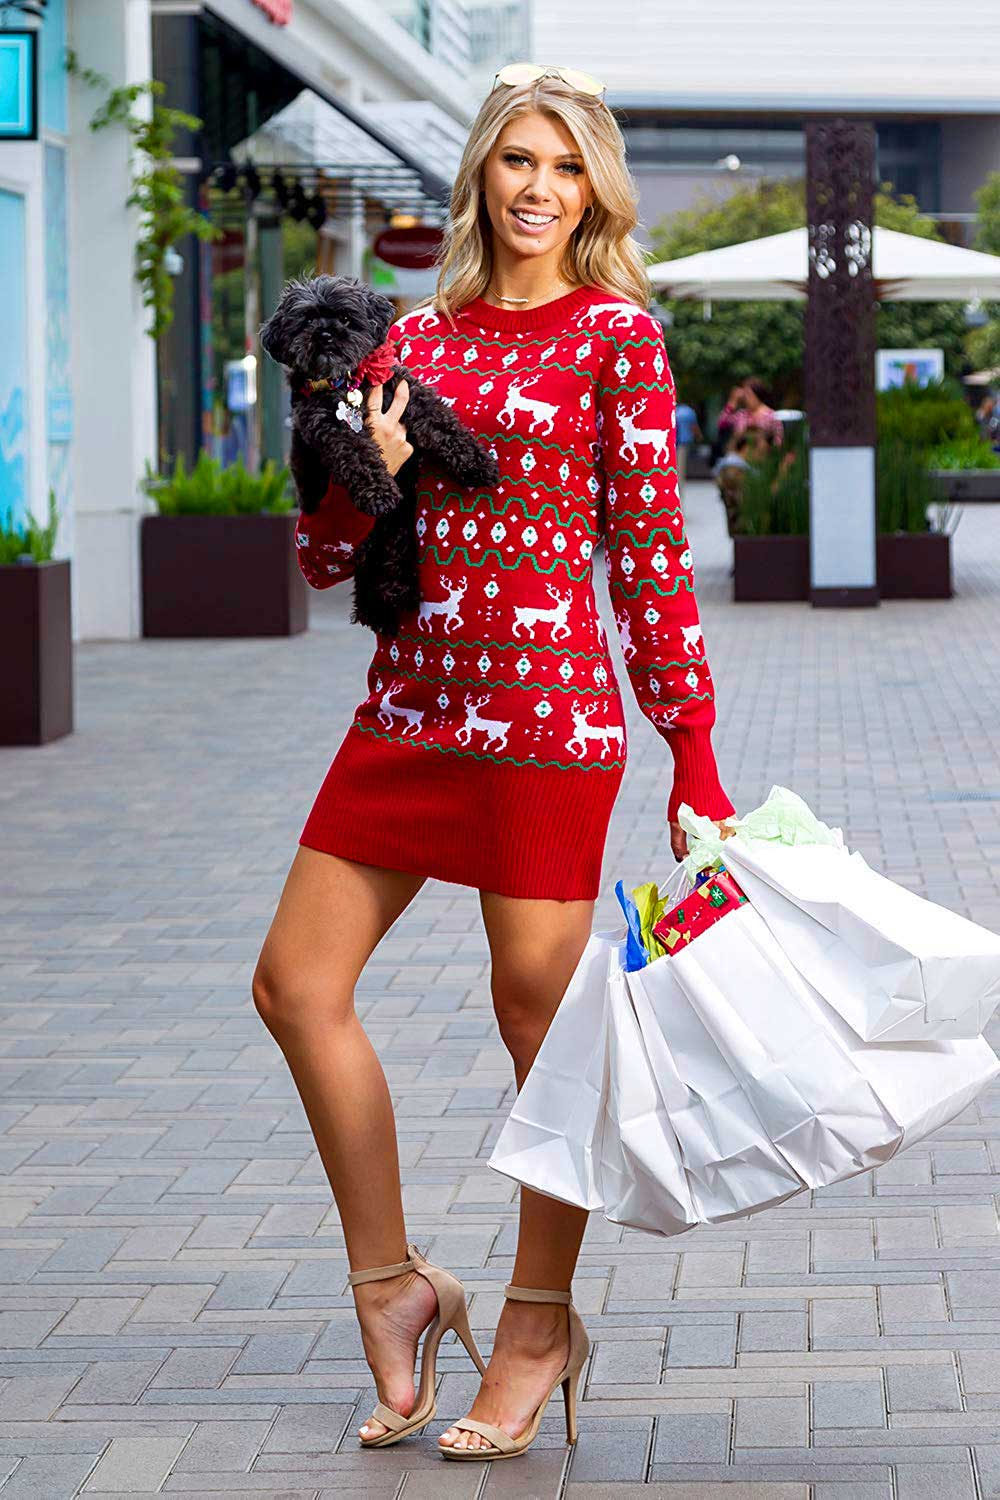 4 Cute Holiday Dress Ideas - What To Wear To A Holiday Party 1